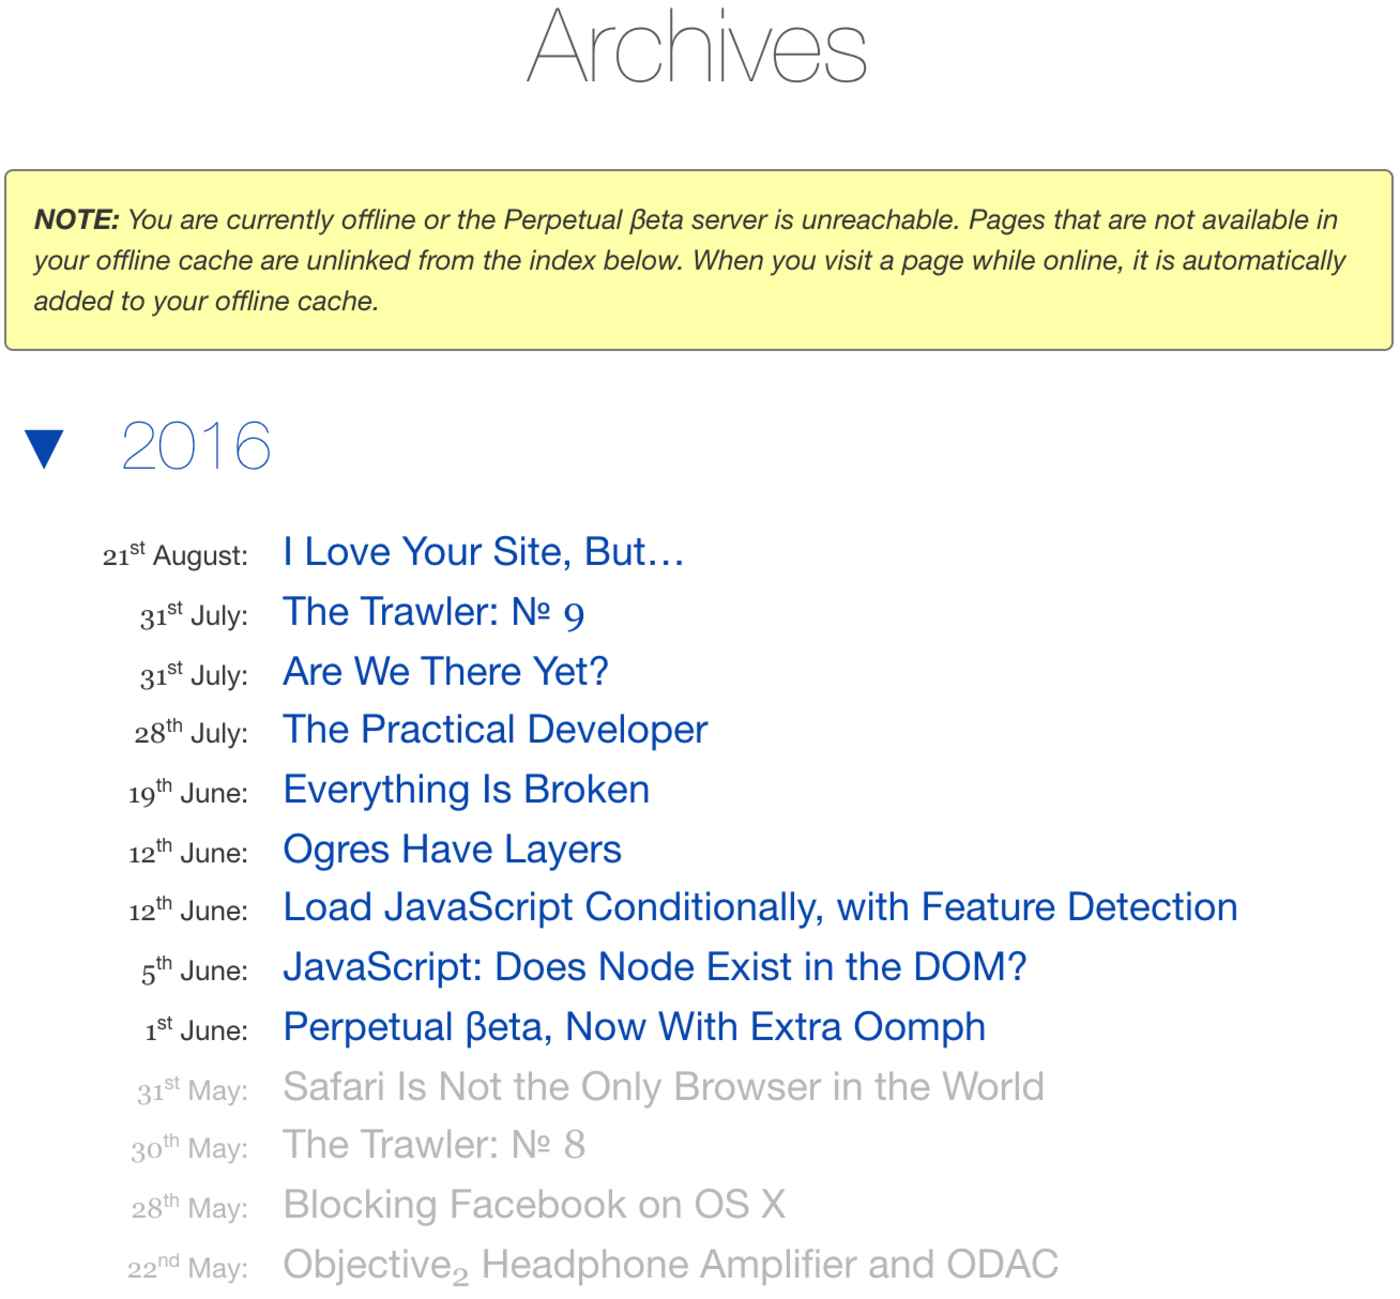 screen capture of the Perpetual βeta's Archives page in offline mode